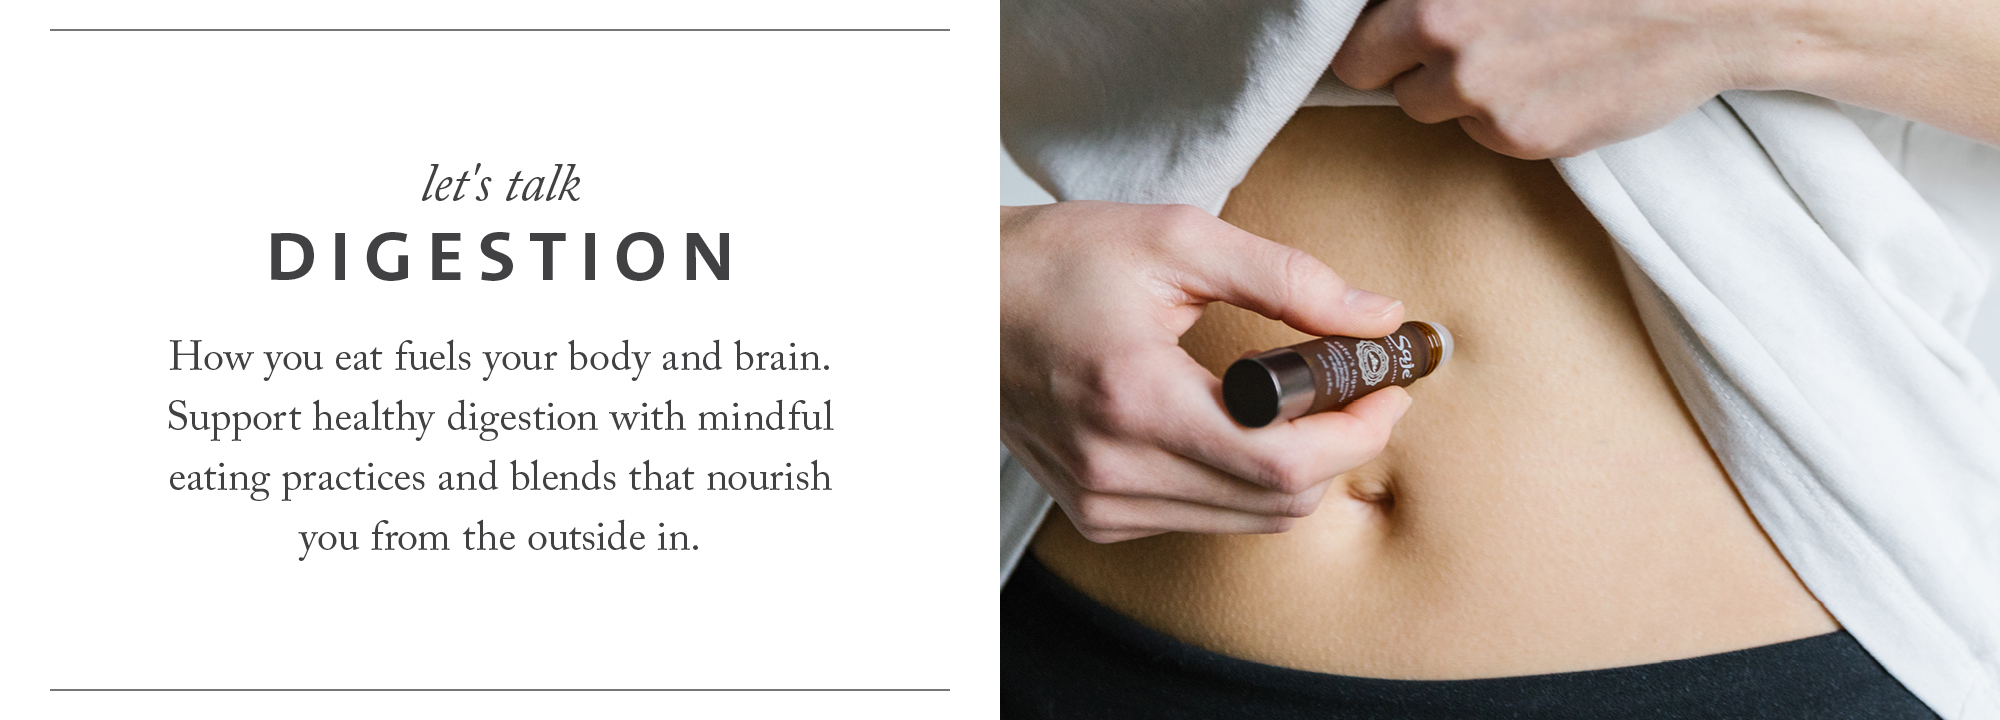 Calm your tummy troubles with our 100% natural remedies for an upset stomach. Shop Saje essential oil blends for digestion: roll-ons, teas and after-meal kits.